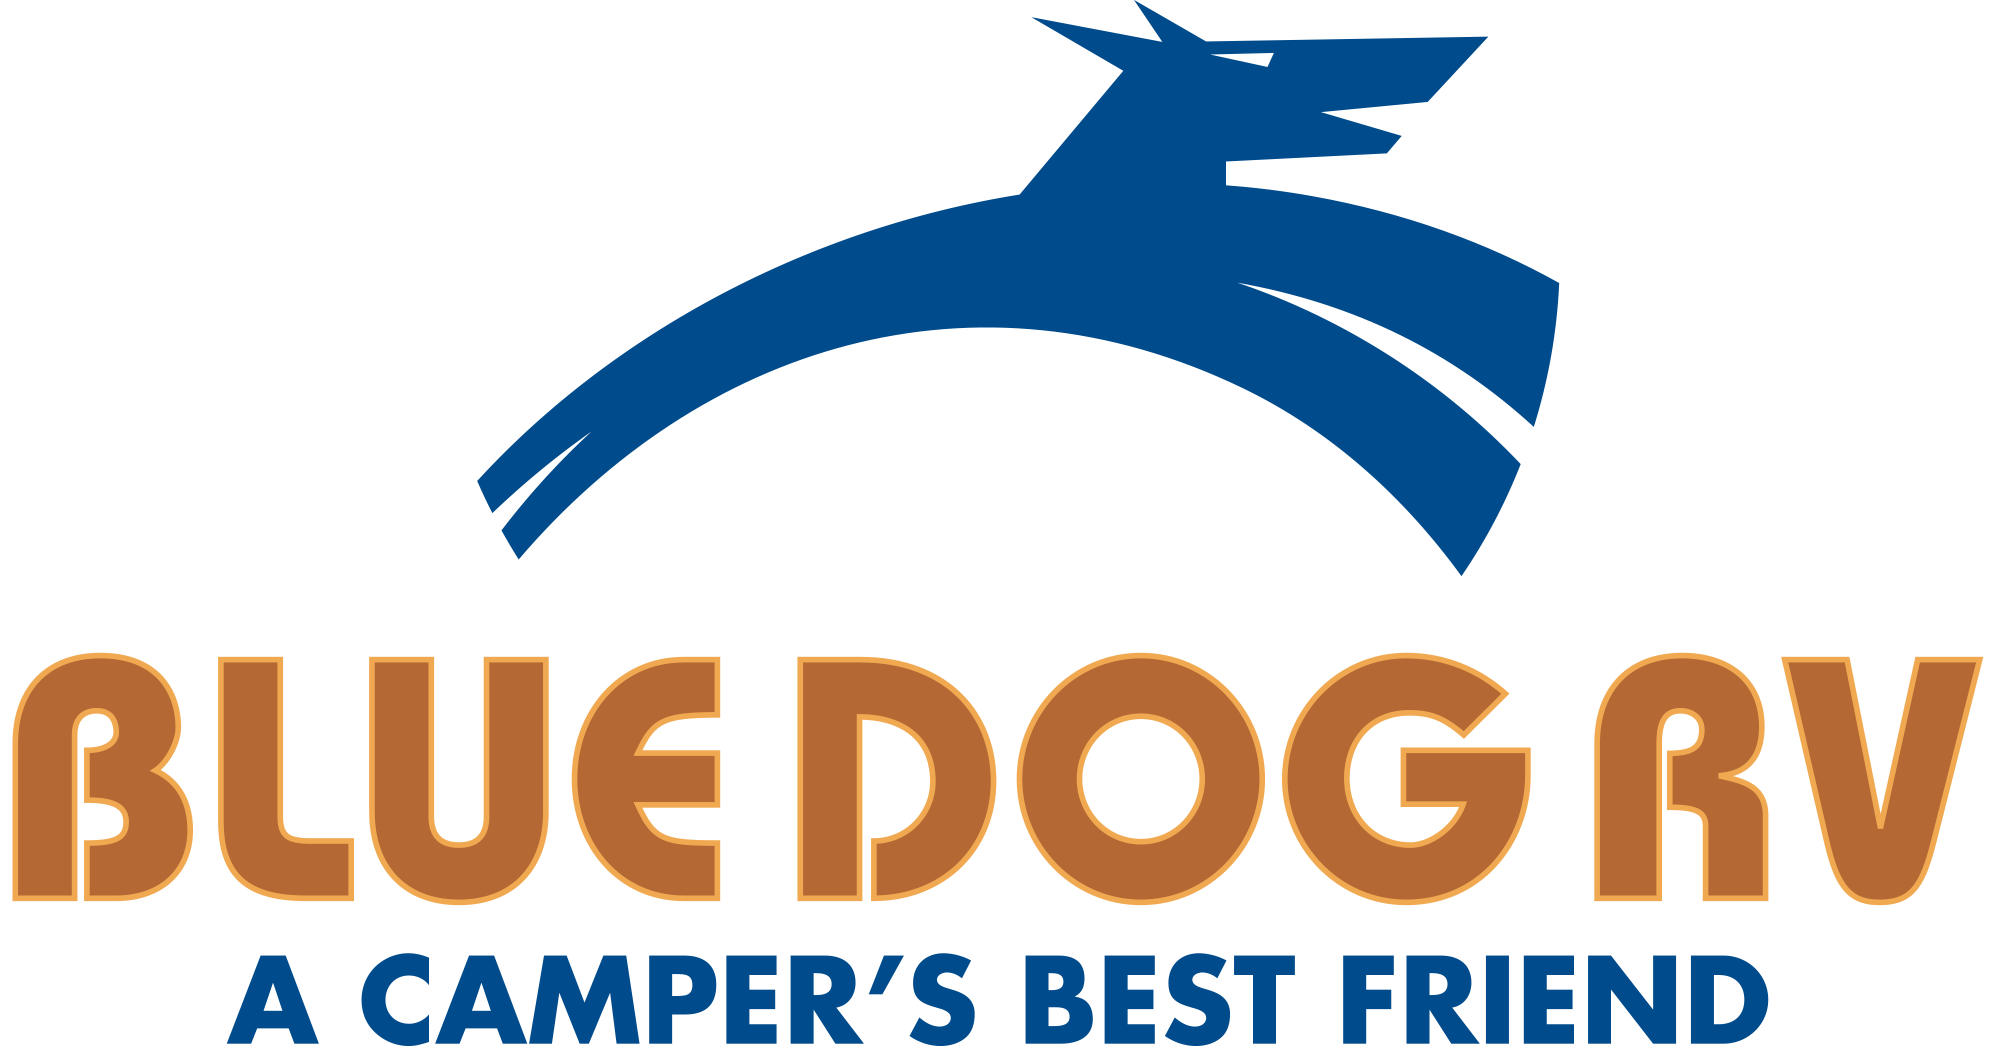 blue-dog-rv-logo.png